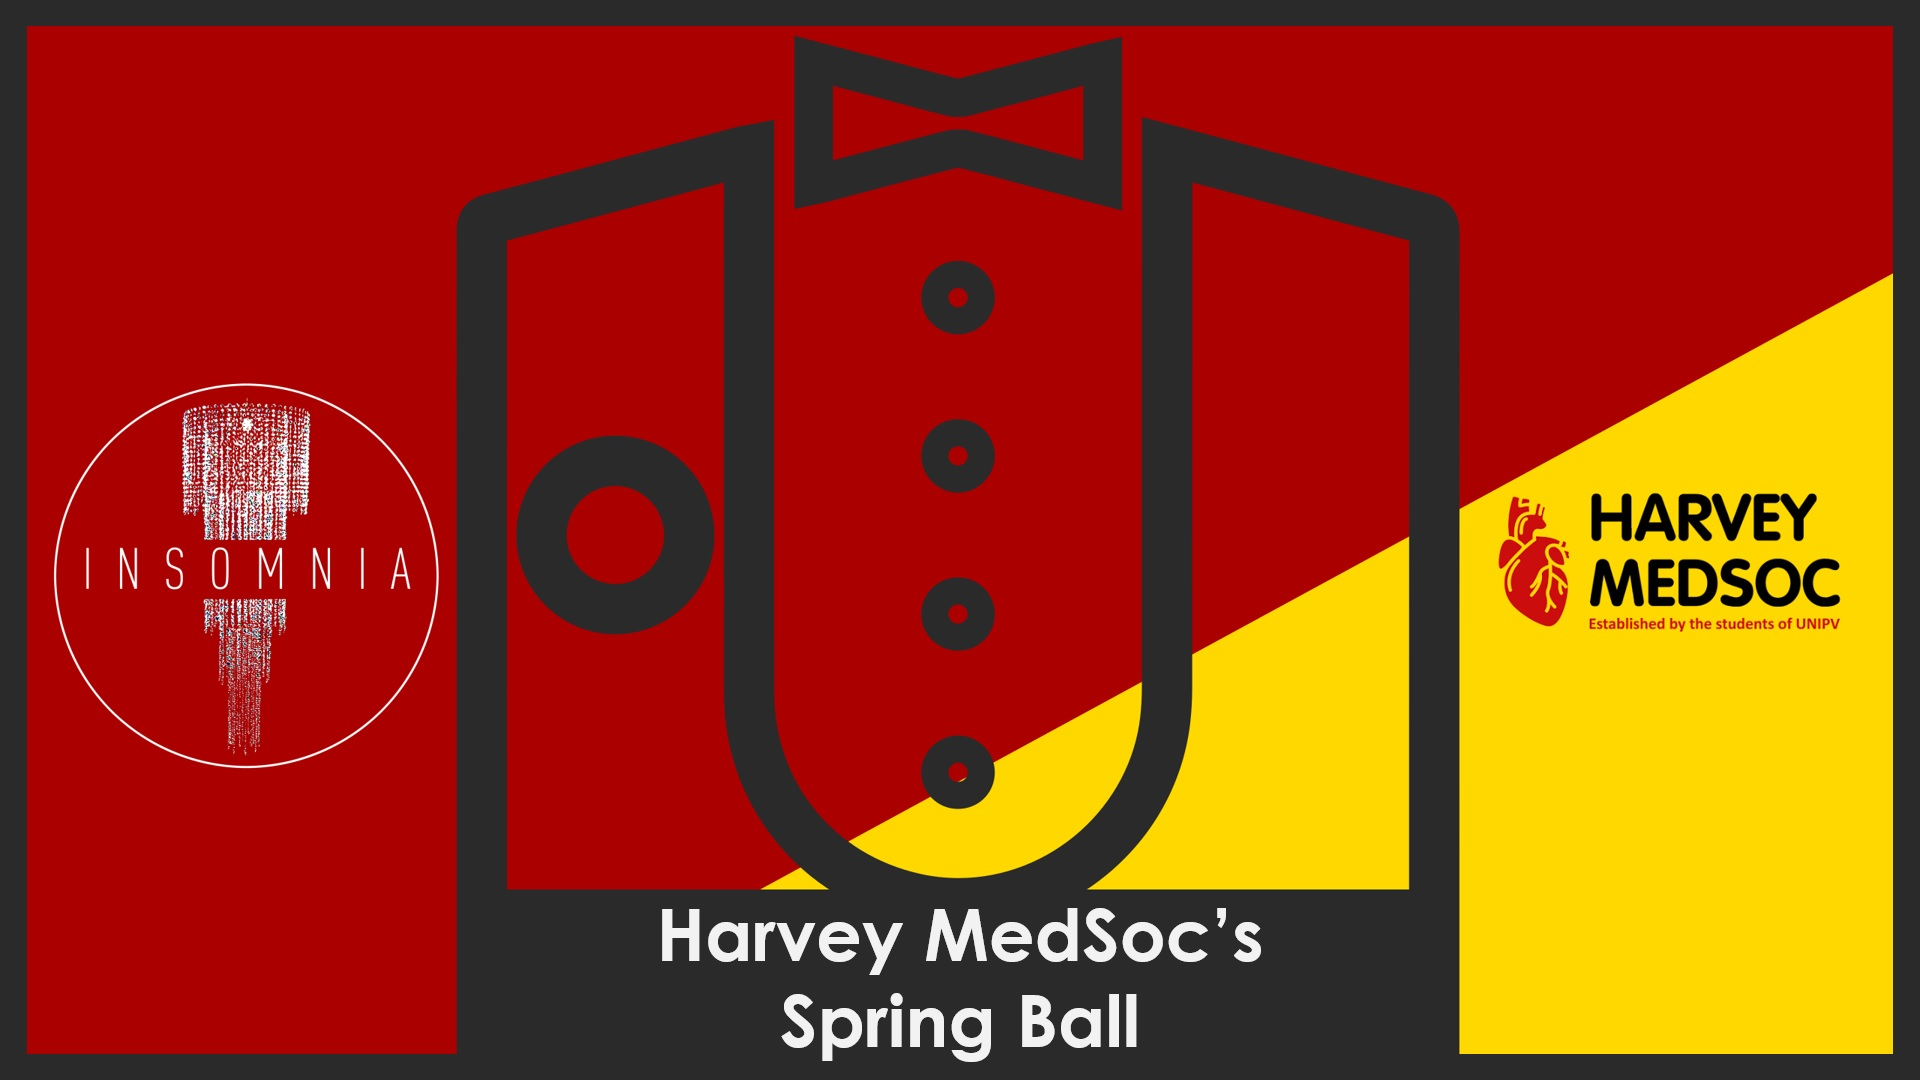 Harvey MedSoc